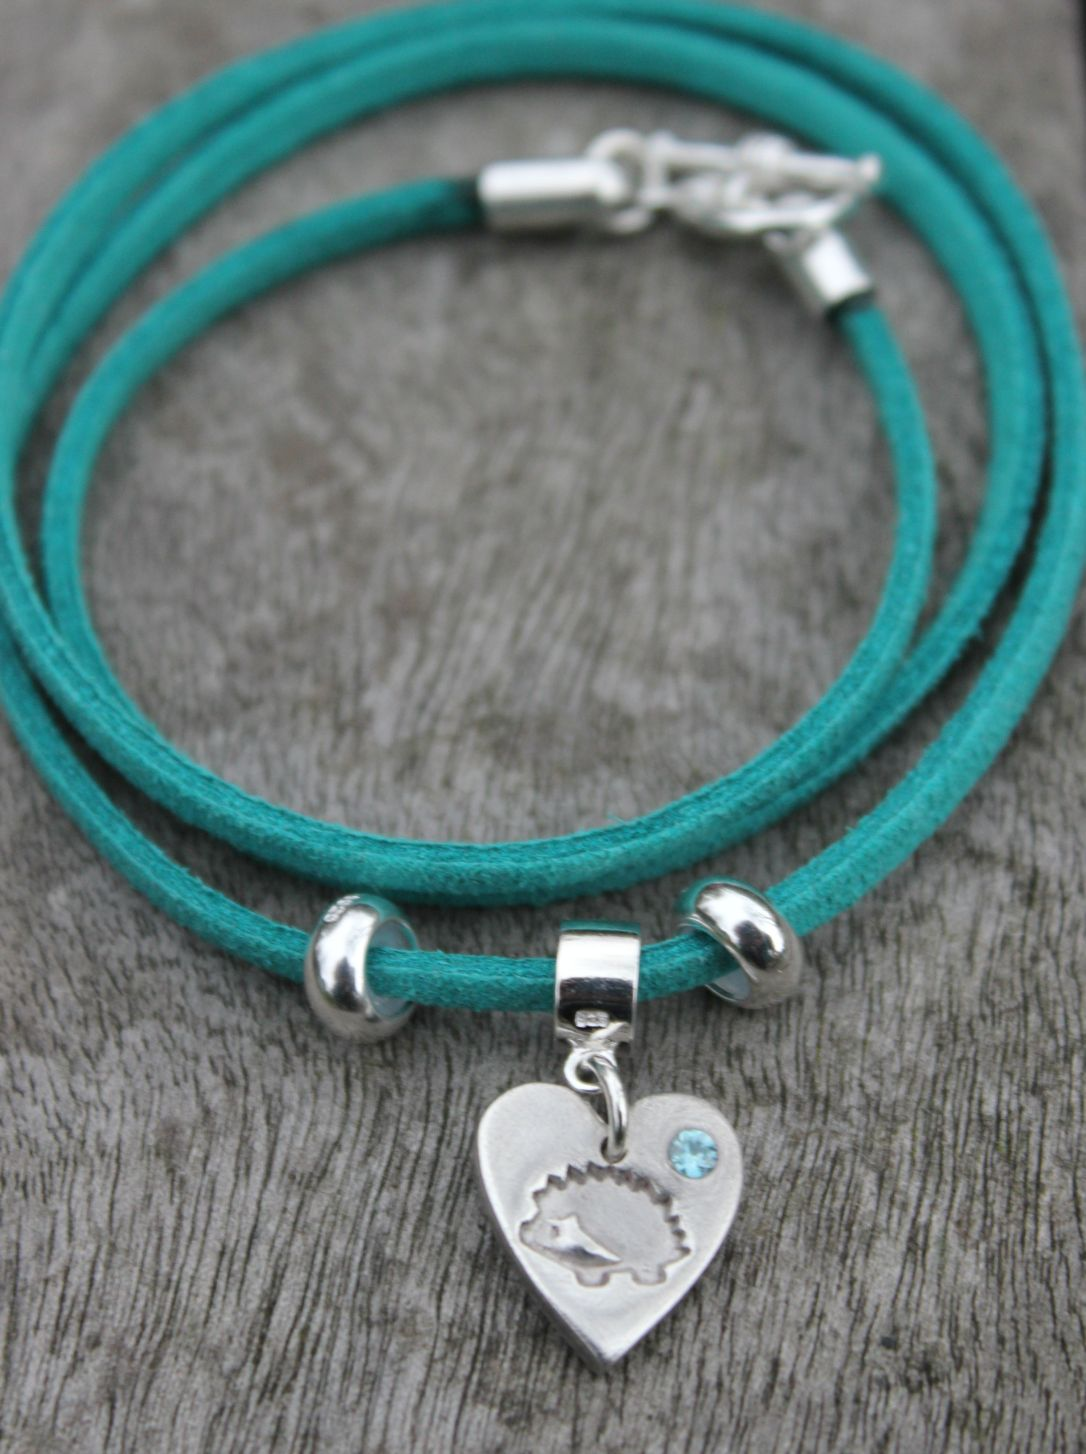 teal hedgehog bracelet with hedgehog charm with blue zircon